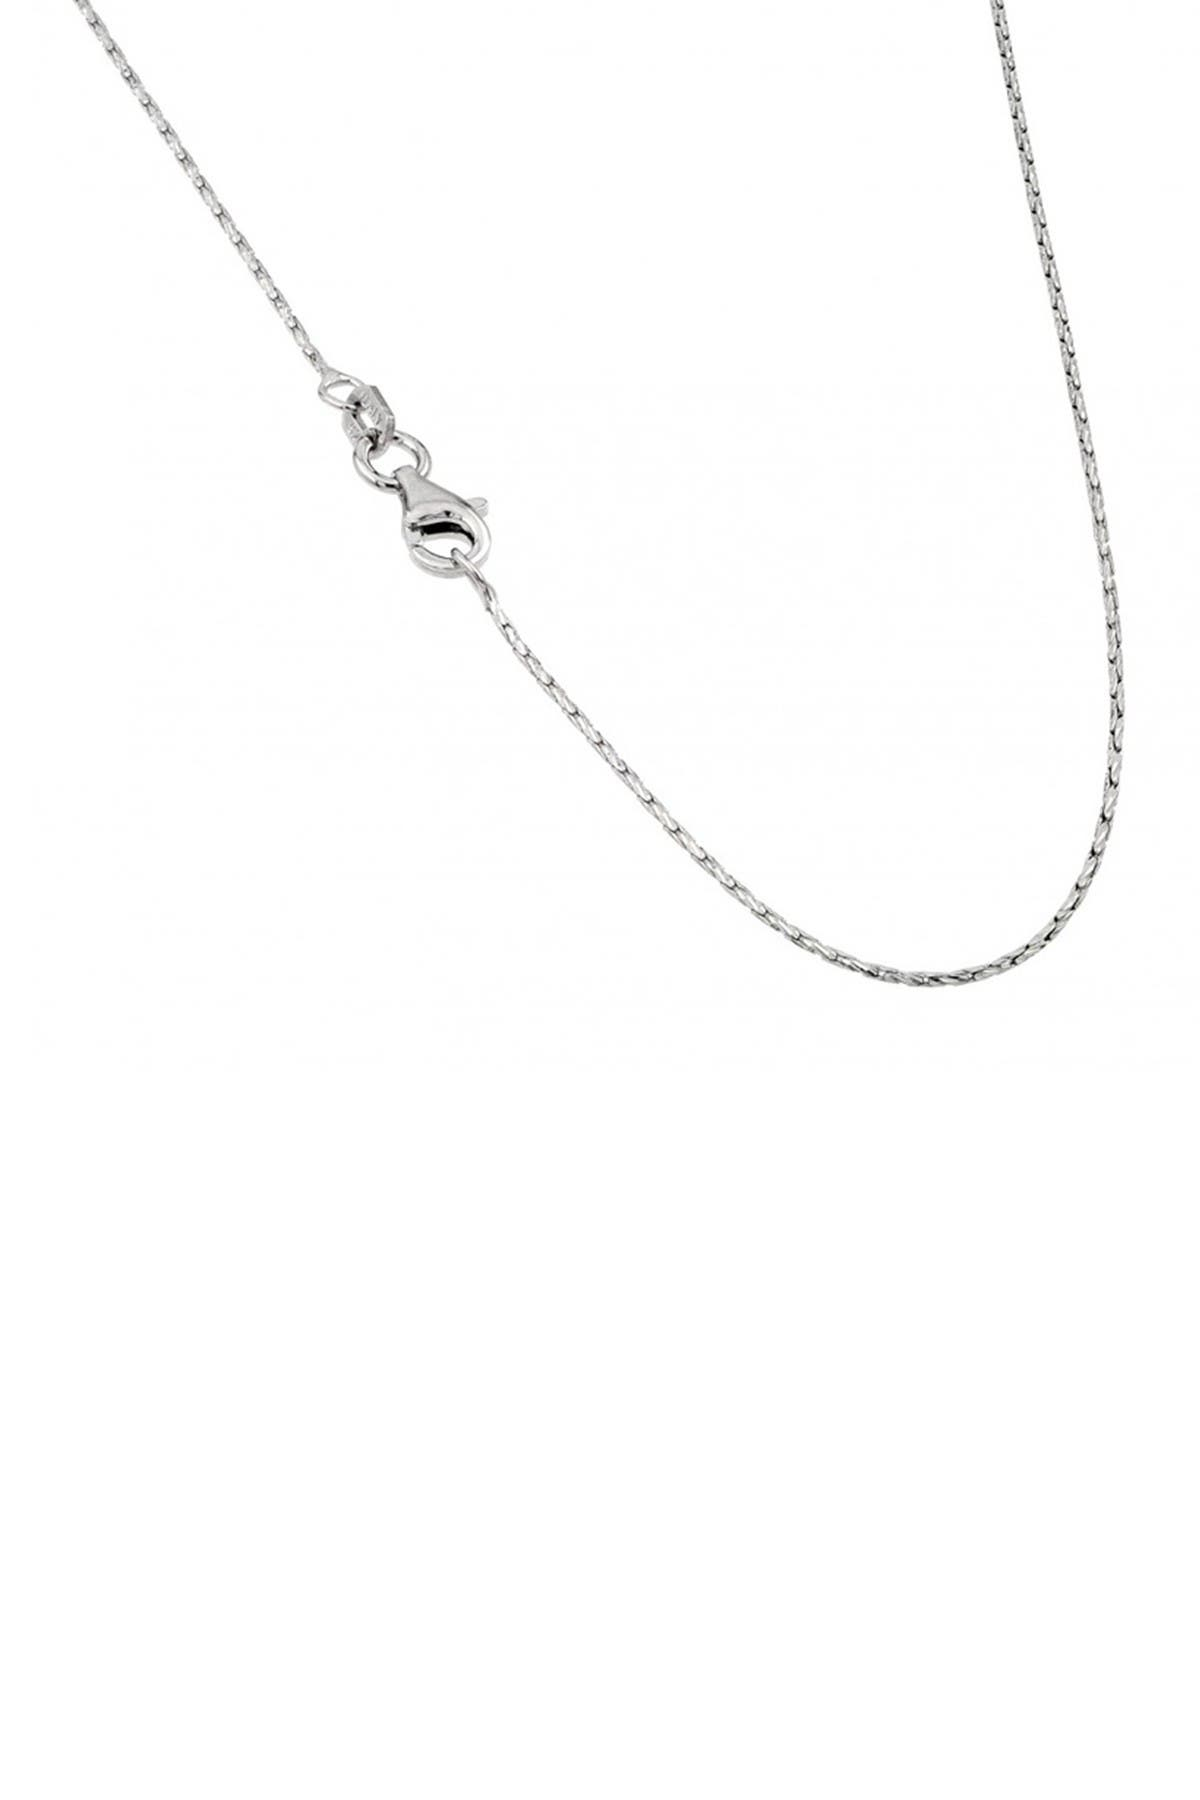 """Image of Best Silver Inc. Sterling Silver 0.8mm Sparkle Chain 16"""""""